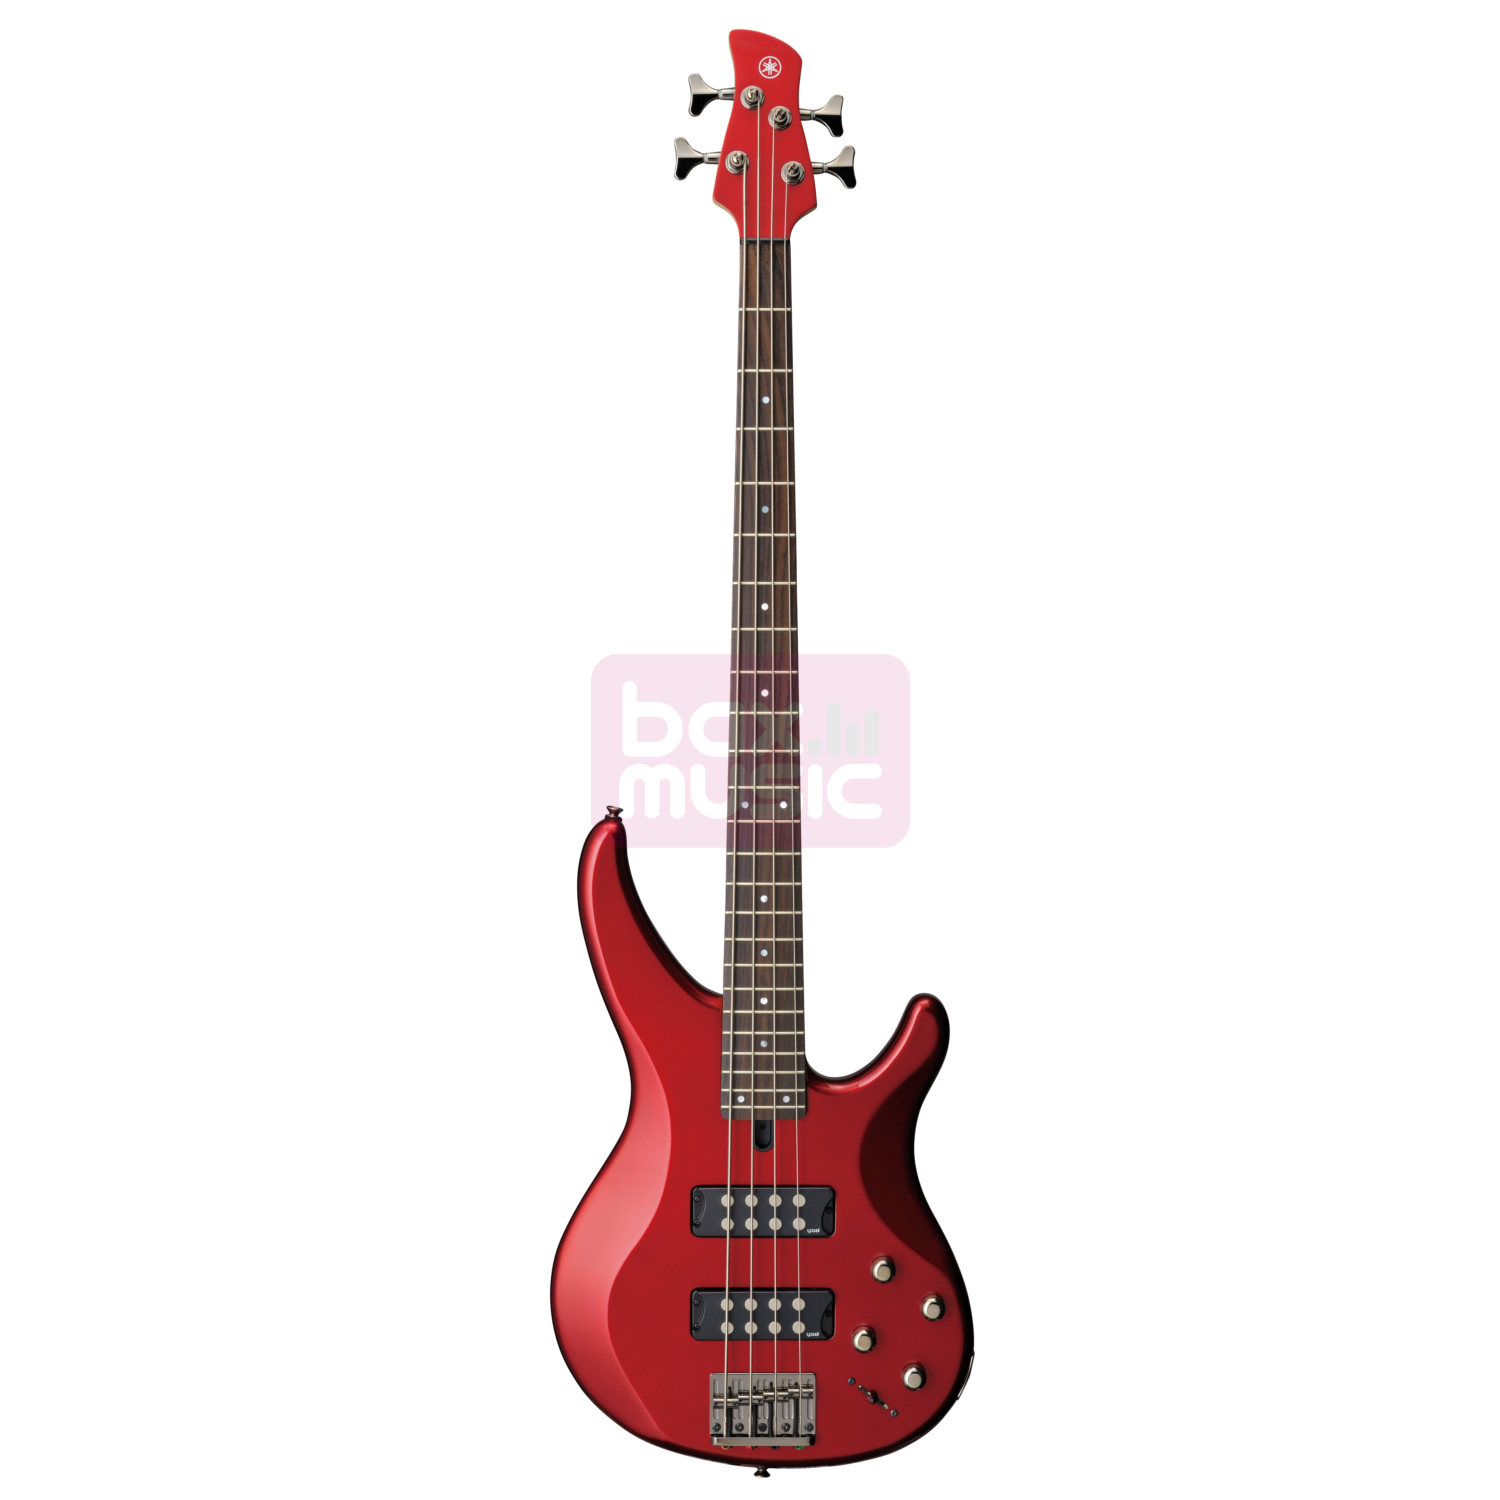 Yamaha TRBX304 Candy Apple Red elektrische basgitaar